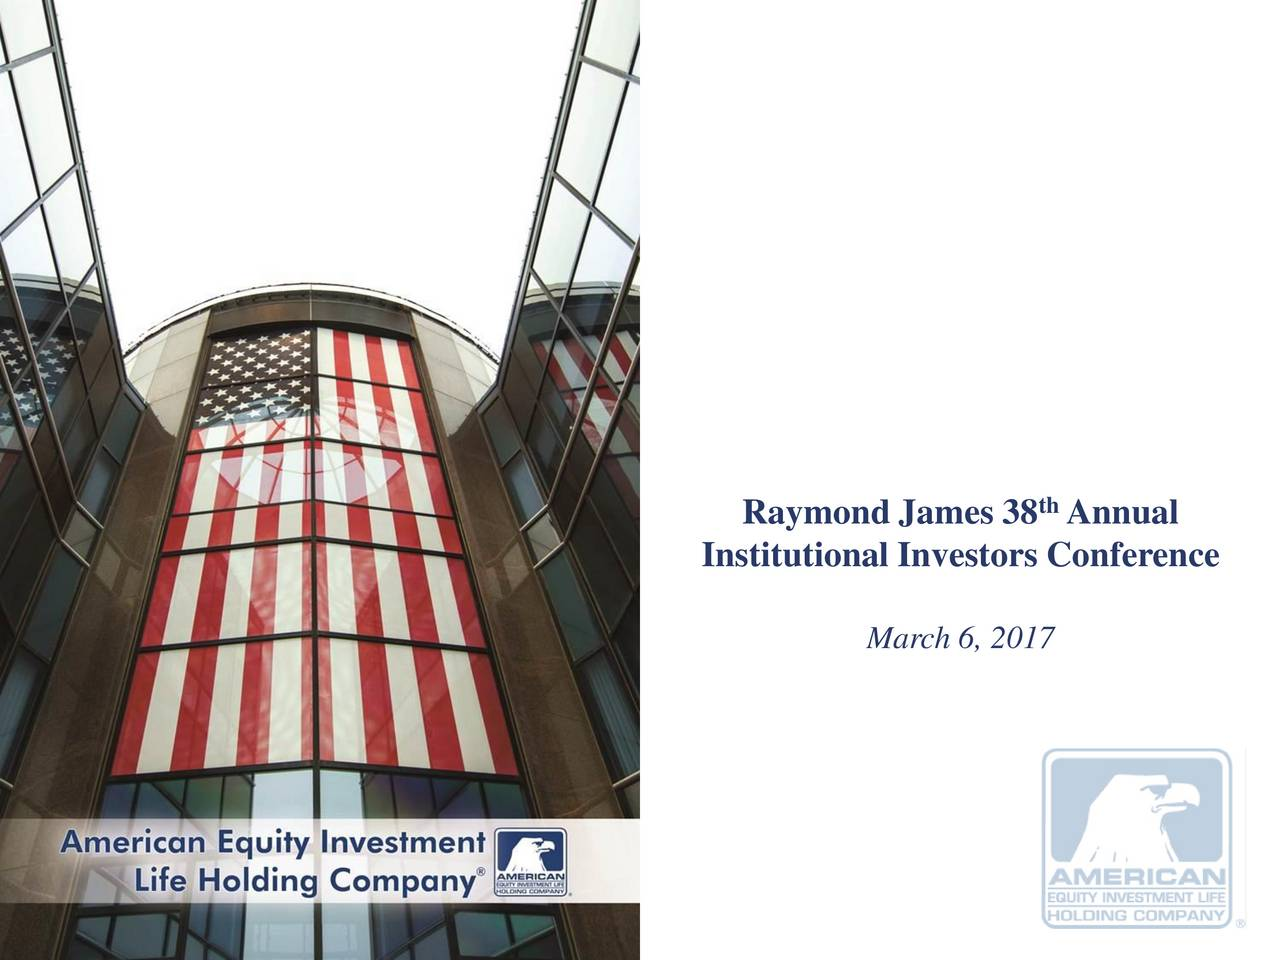 Institutional Investors Conference March 6, 2017